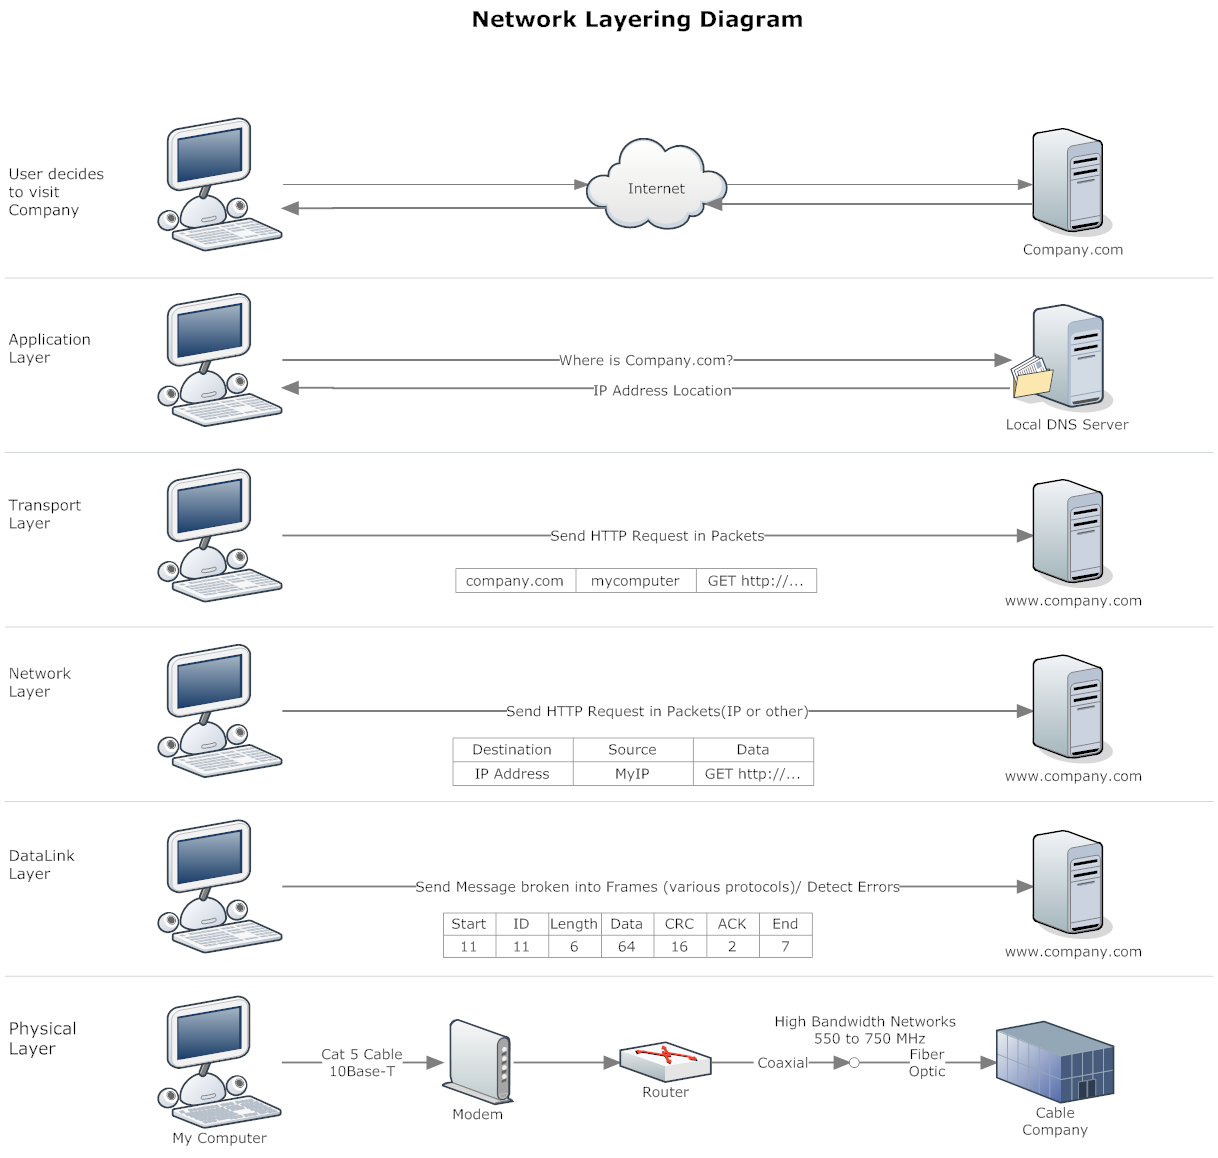 small resolution of network diagram example network layering diagram computer network software development java layering